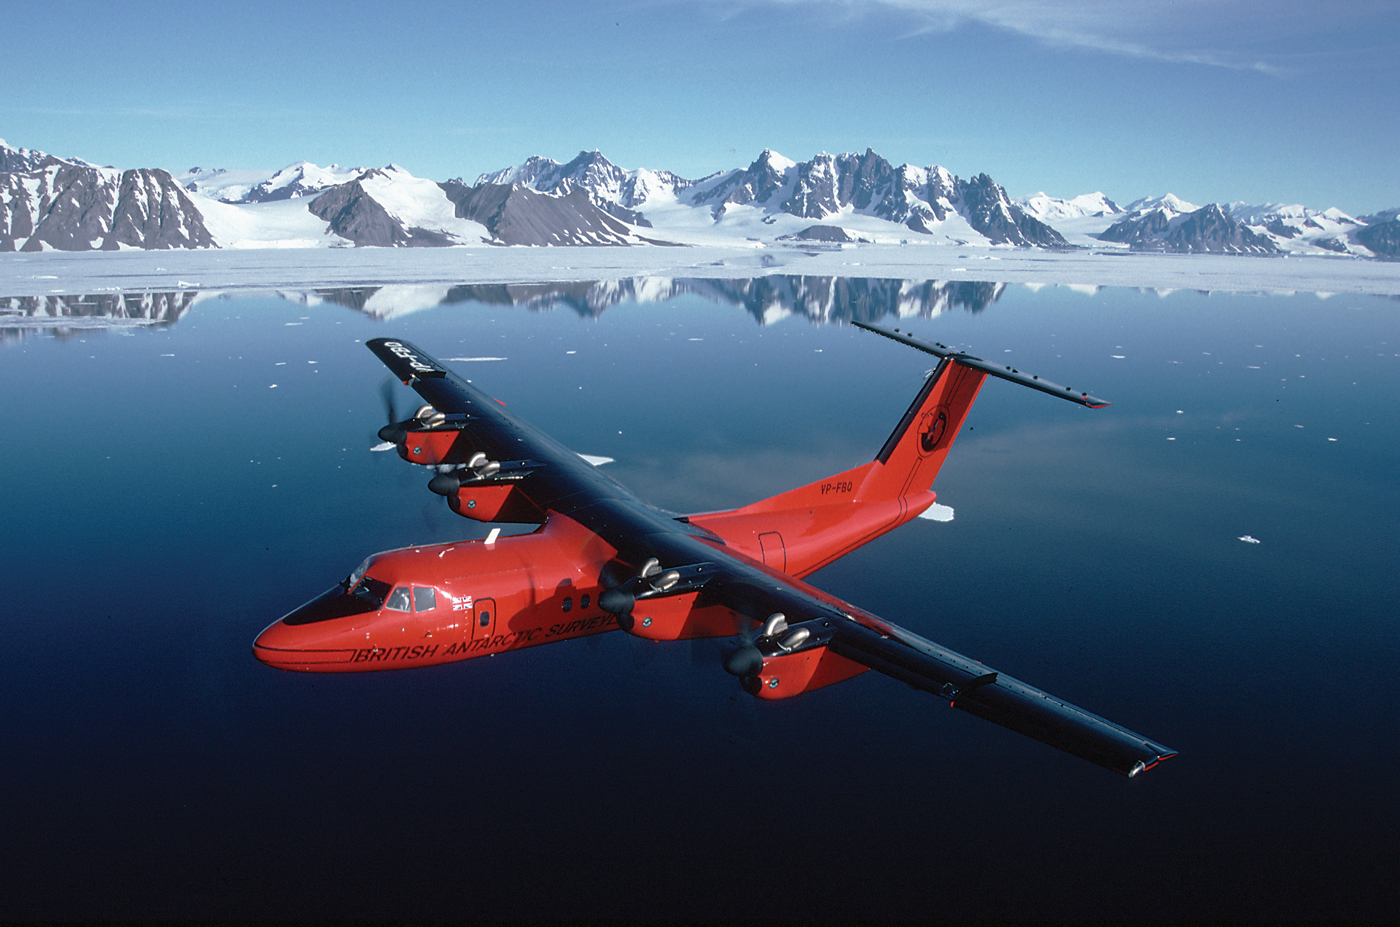 British Antarctic Survey's Dash 7 makes regular flights to and from the Falkland Islands during the austral summer. The 1,900-kilometre journey can be completed in five hours with up to 16 passengers or 2,000 kilograms of cargo on board. BAS Photo